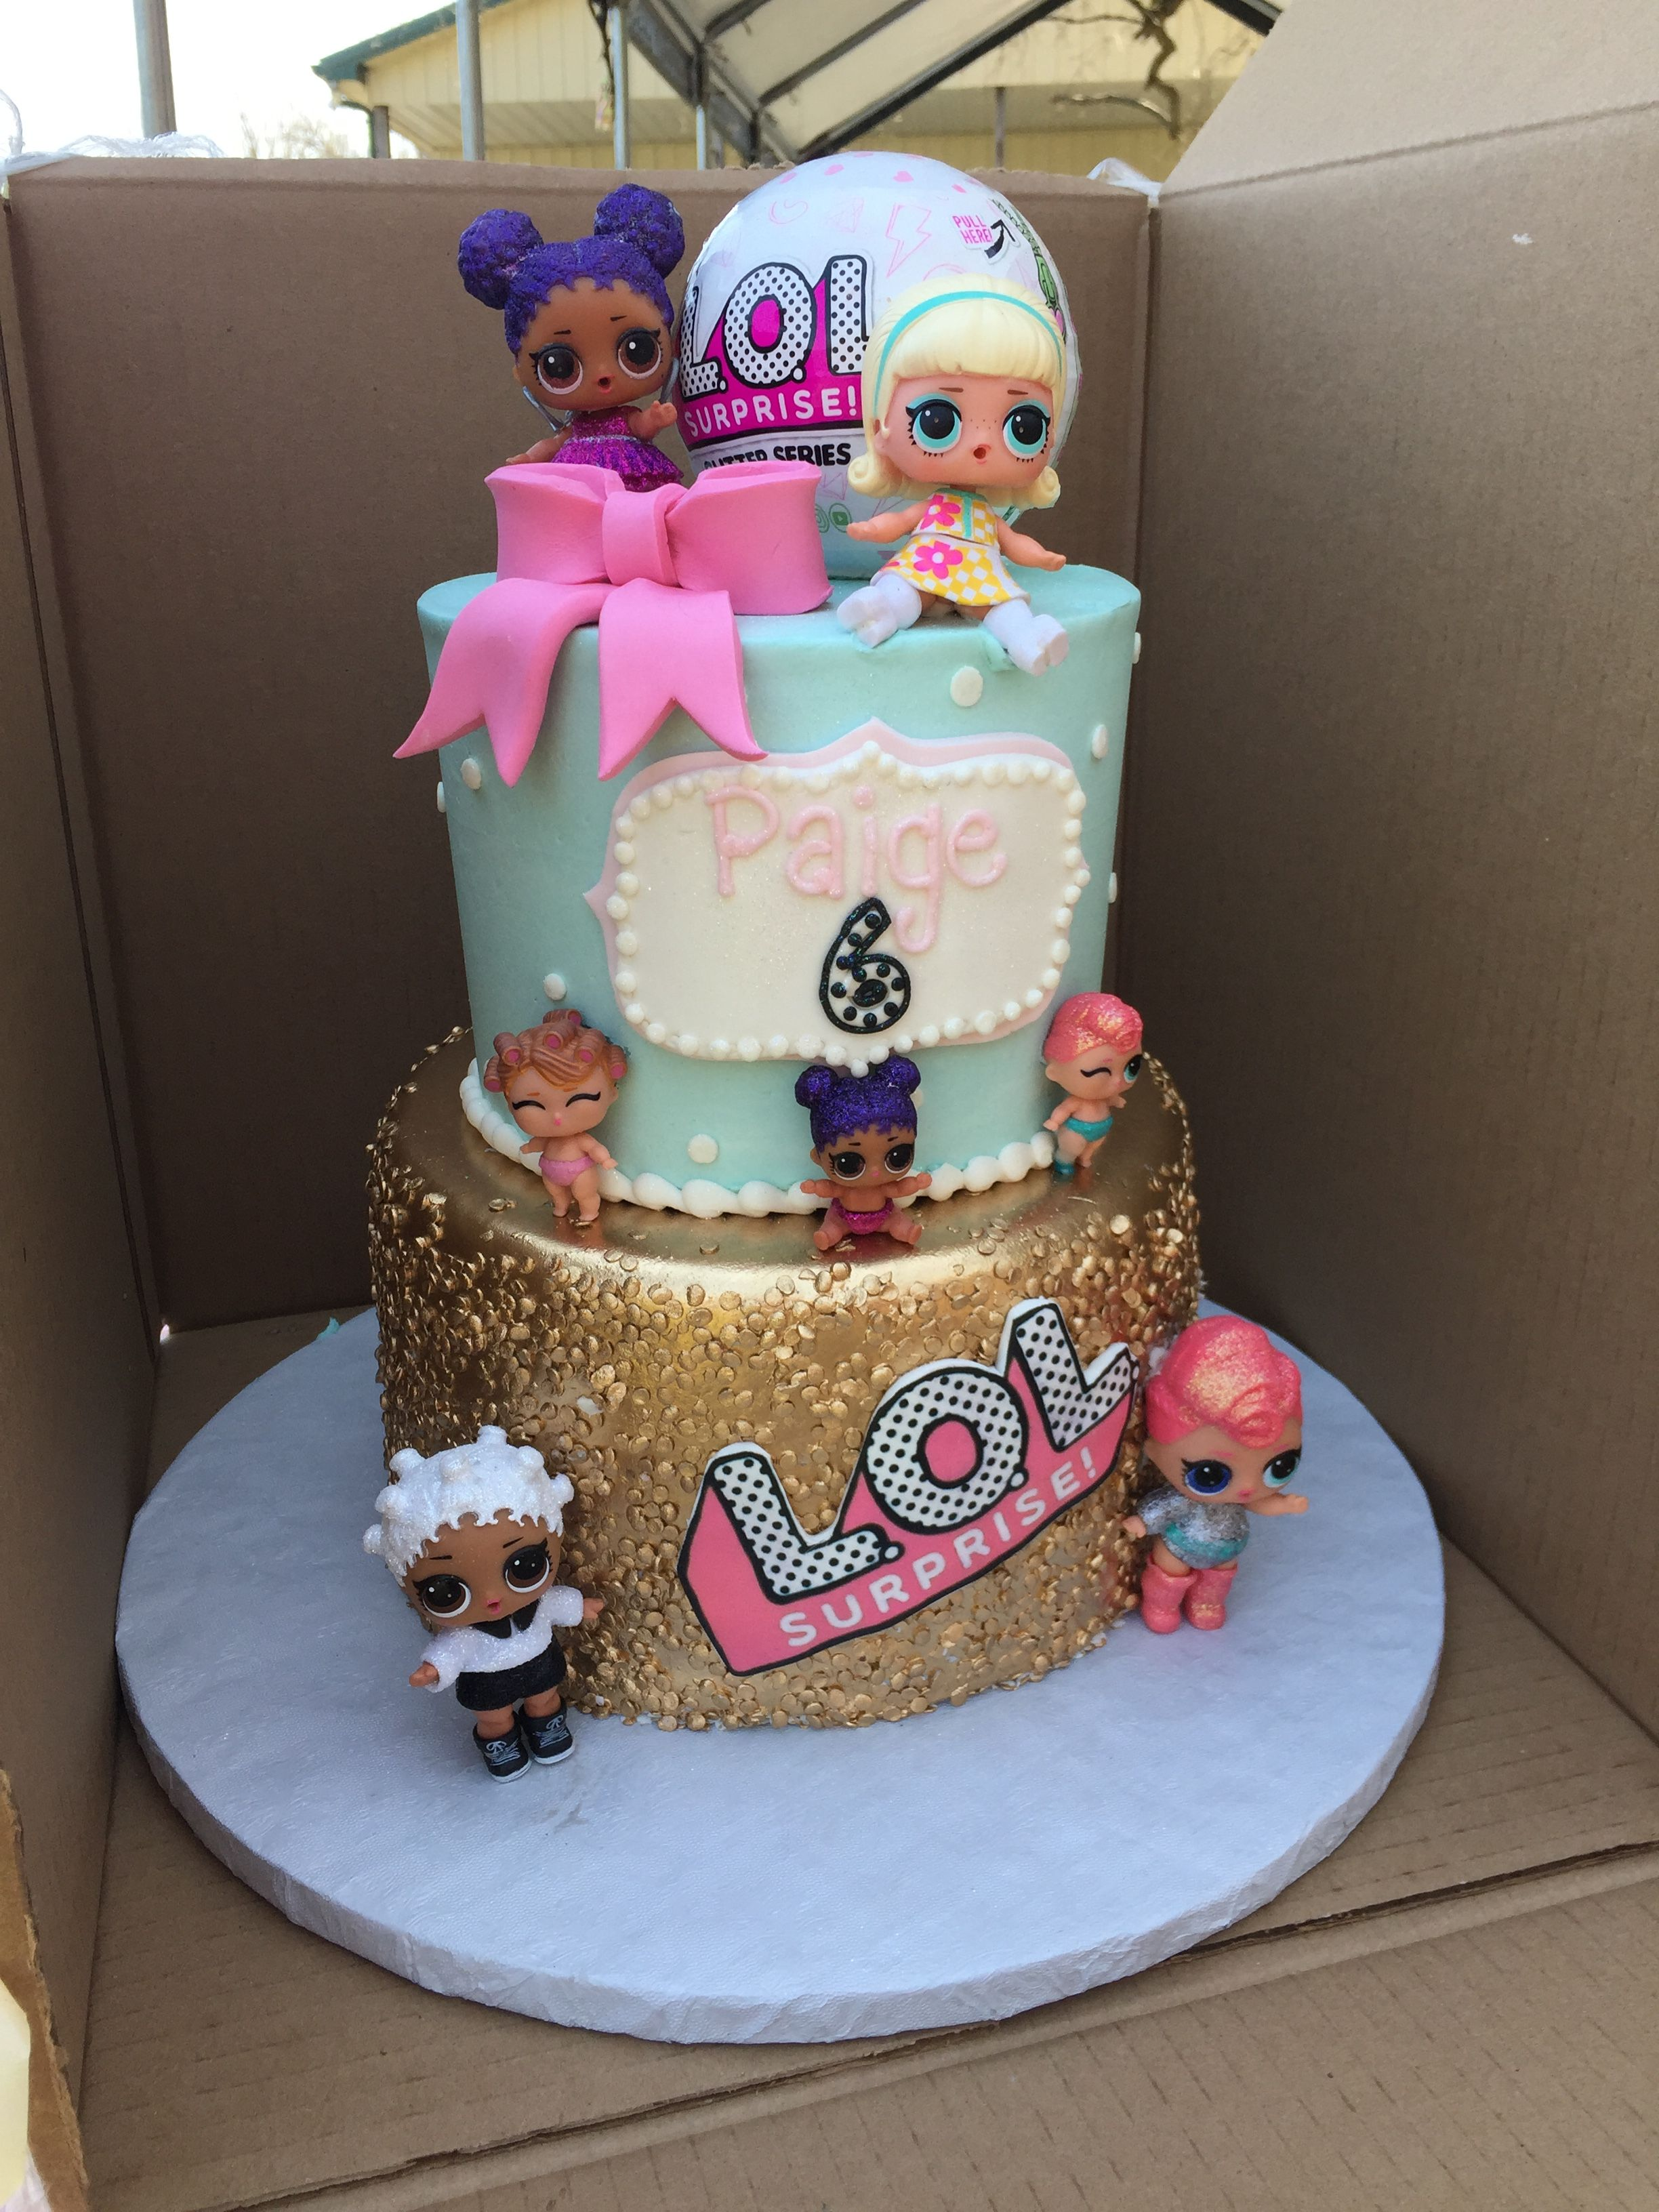 My Daughters Lol Surprise Birthday Cake Funny Birthday Cakes Surprise Birthday Cake 6th Birthday Cakes